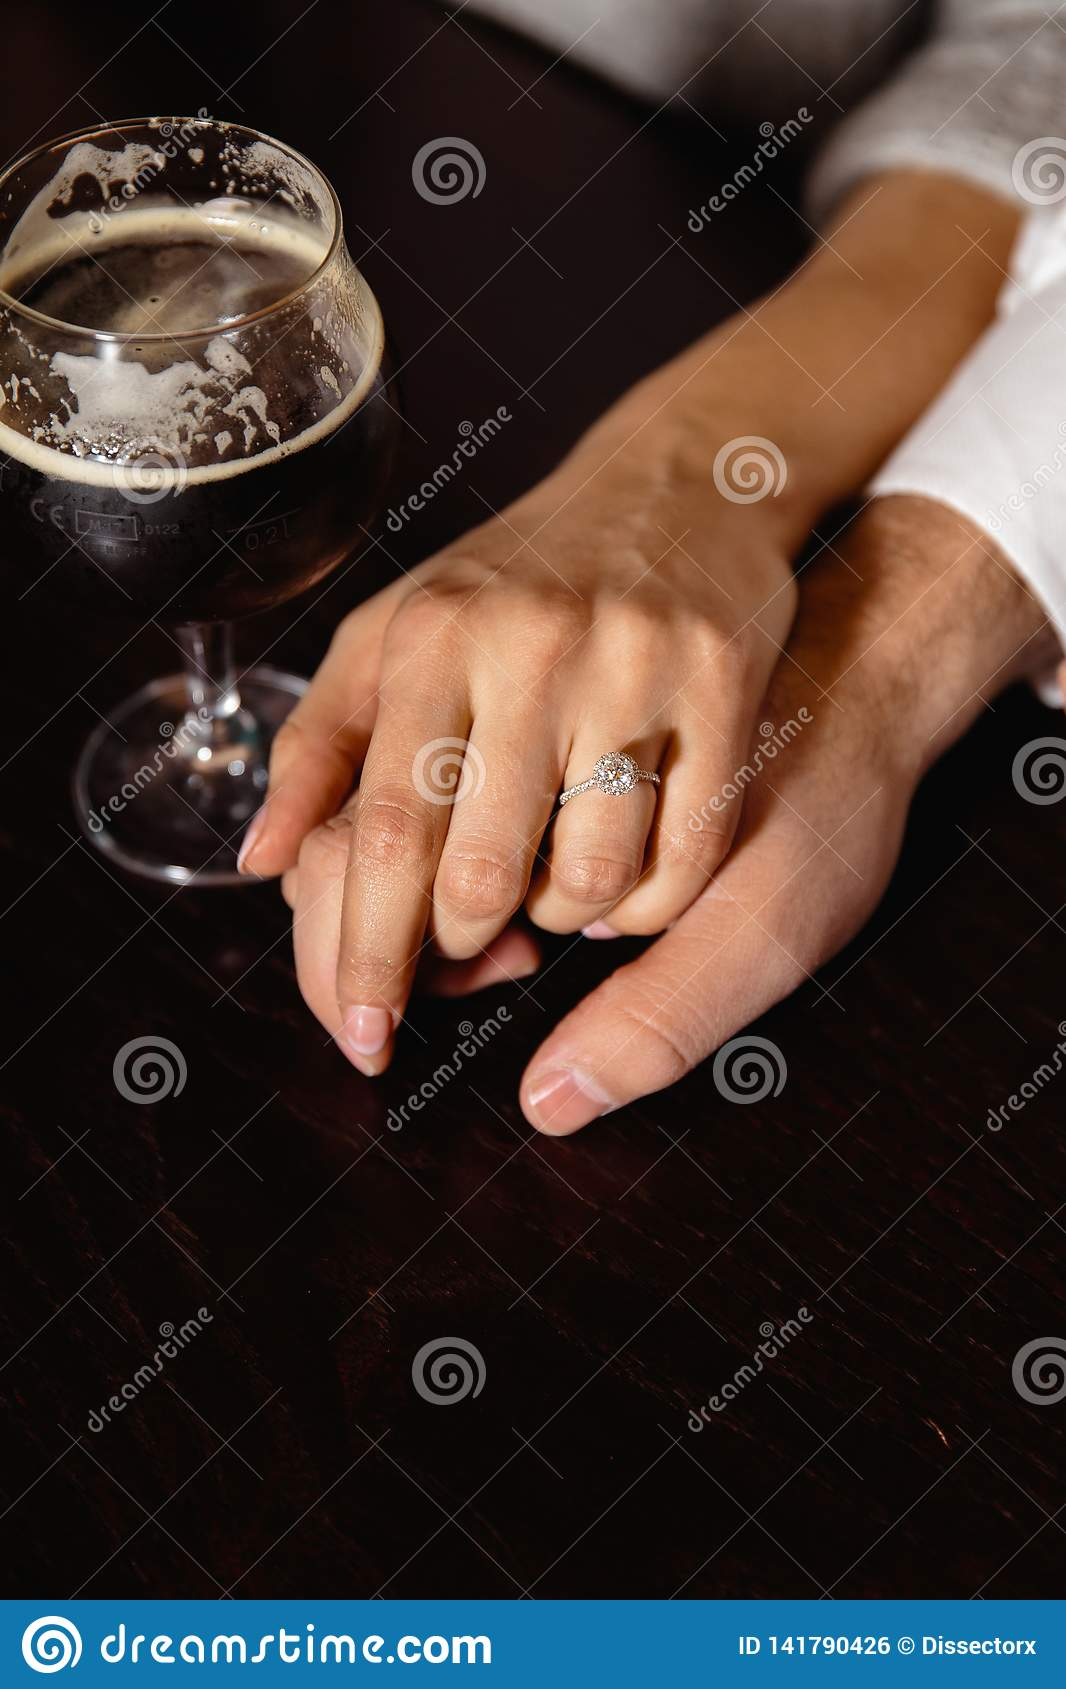 Real life proposal: Couple holding hands in a pub with a glass of beer to their side